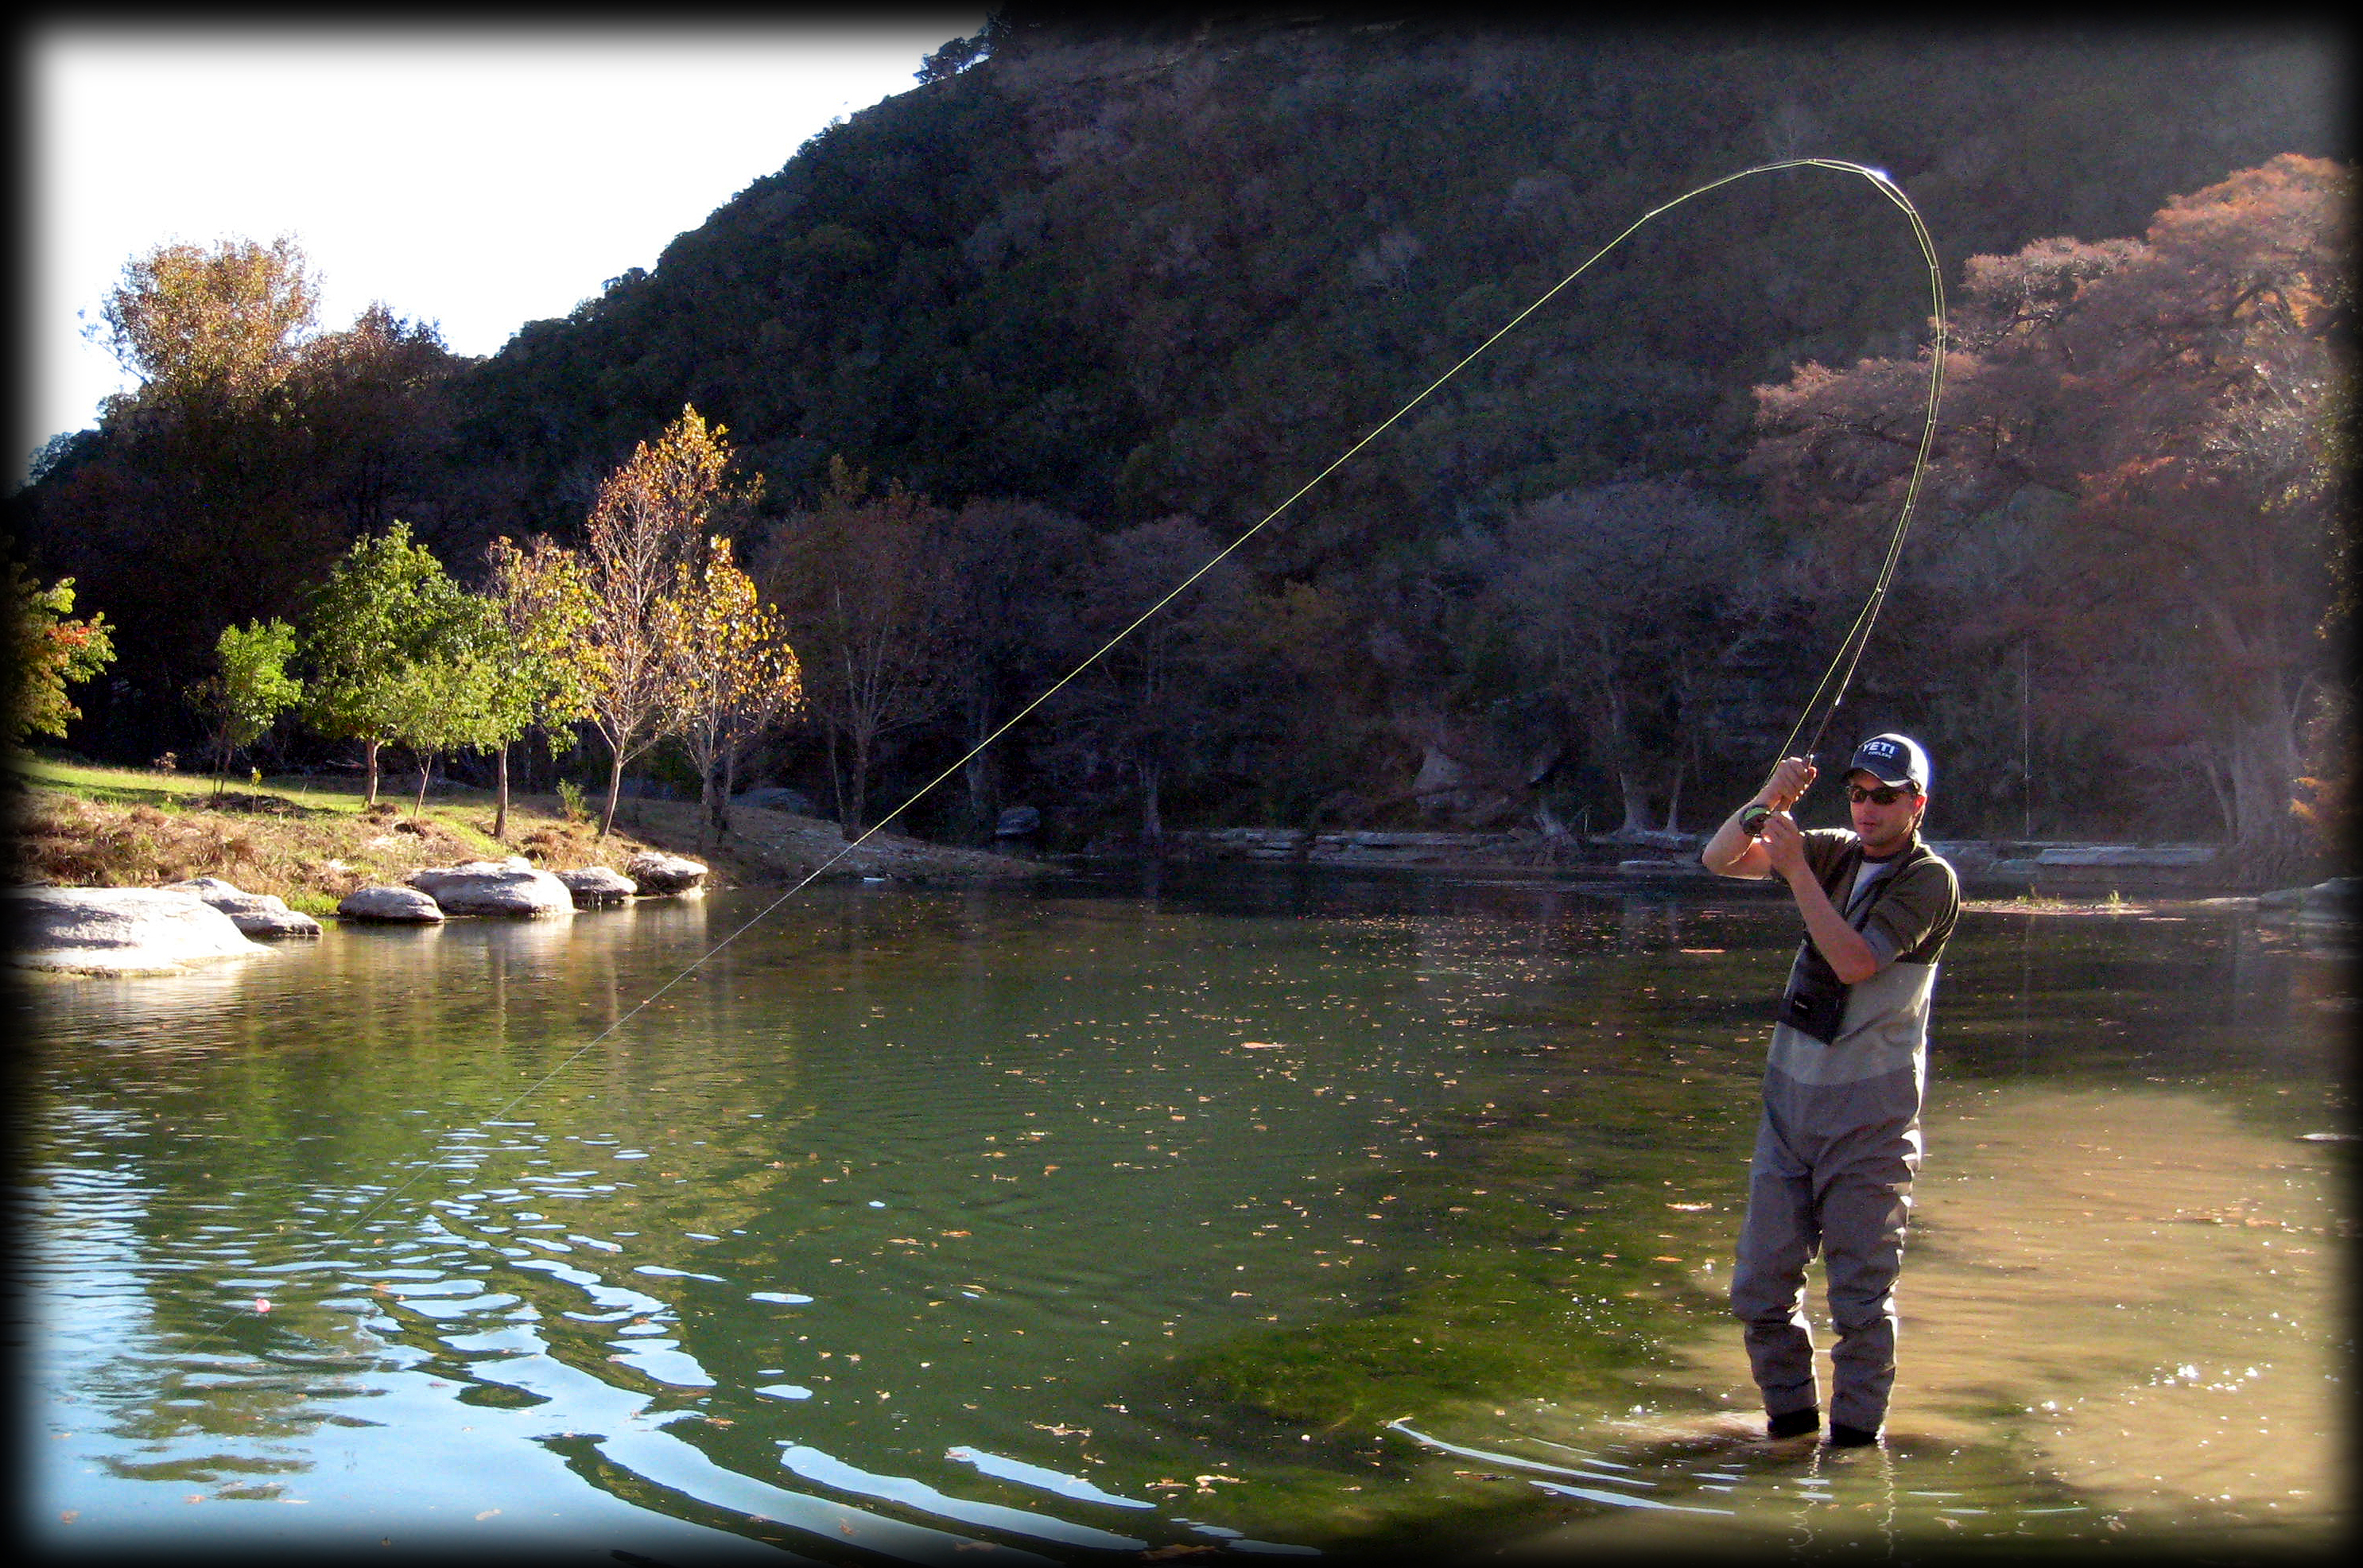 Guadalupe river trout fishing report 11 28 09 for Trout fishing in texas